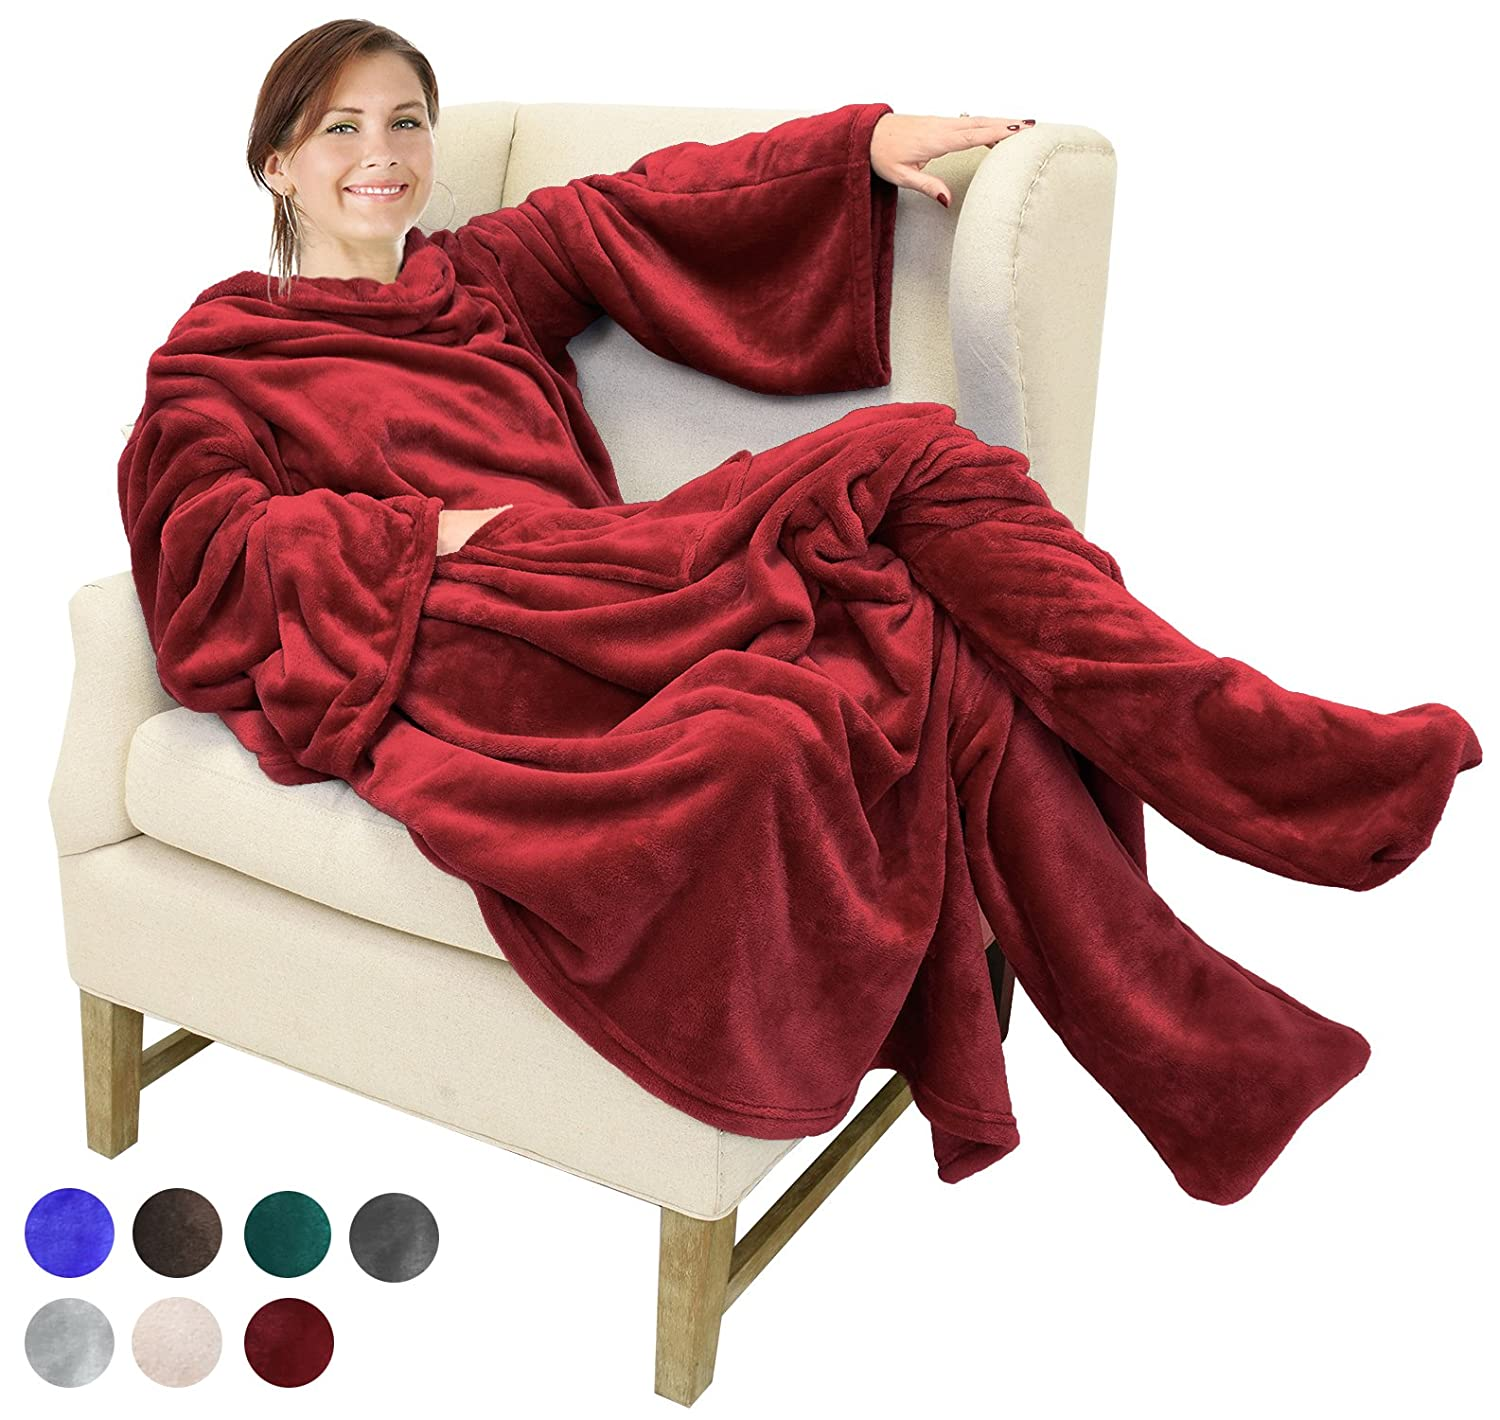 Fleece Blanket with Sleeves & Foot Pockets, Blue Micro Plush Fleece Blanket, Large Wrap Throw Blanket, for Adult Women Men 190cm x 135cm (75